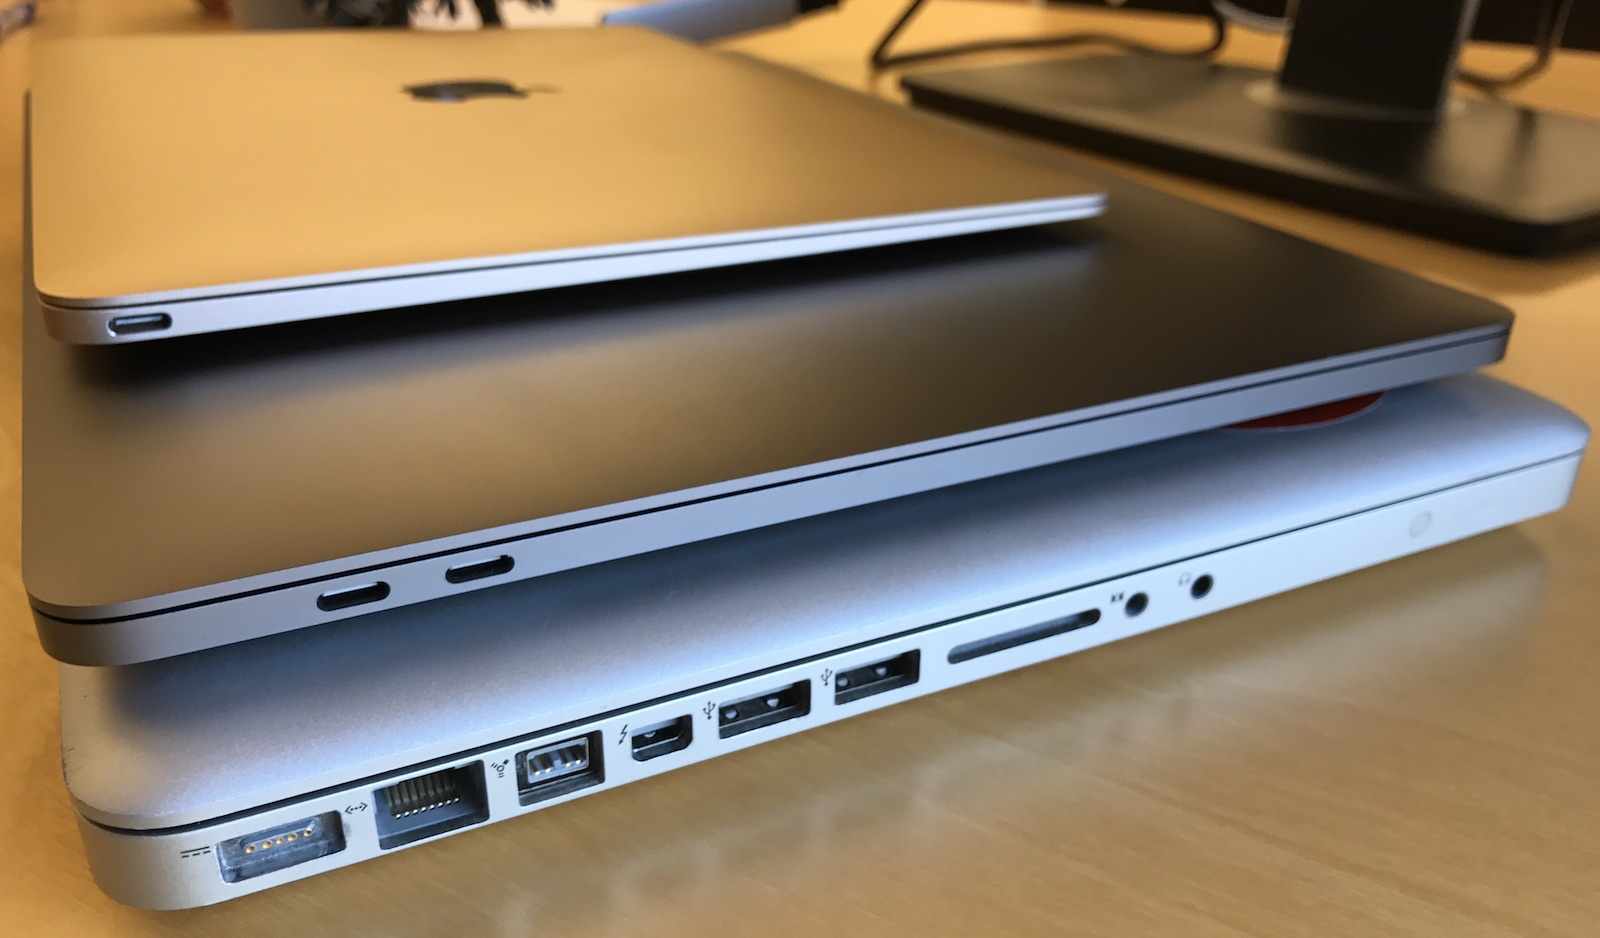 From top to bottom: 12-inch Macbook, 15-inch 2016 Macbook pro, 15-inch 2011 Macbook pro